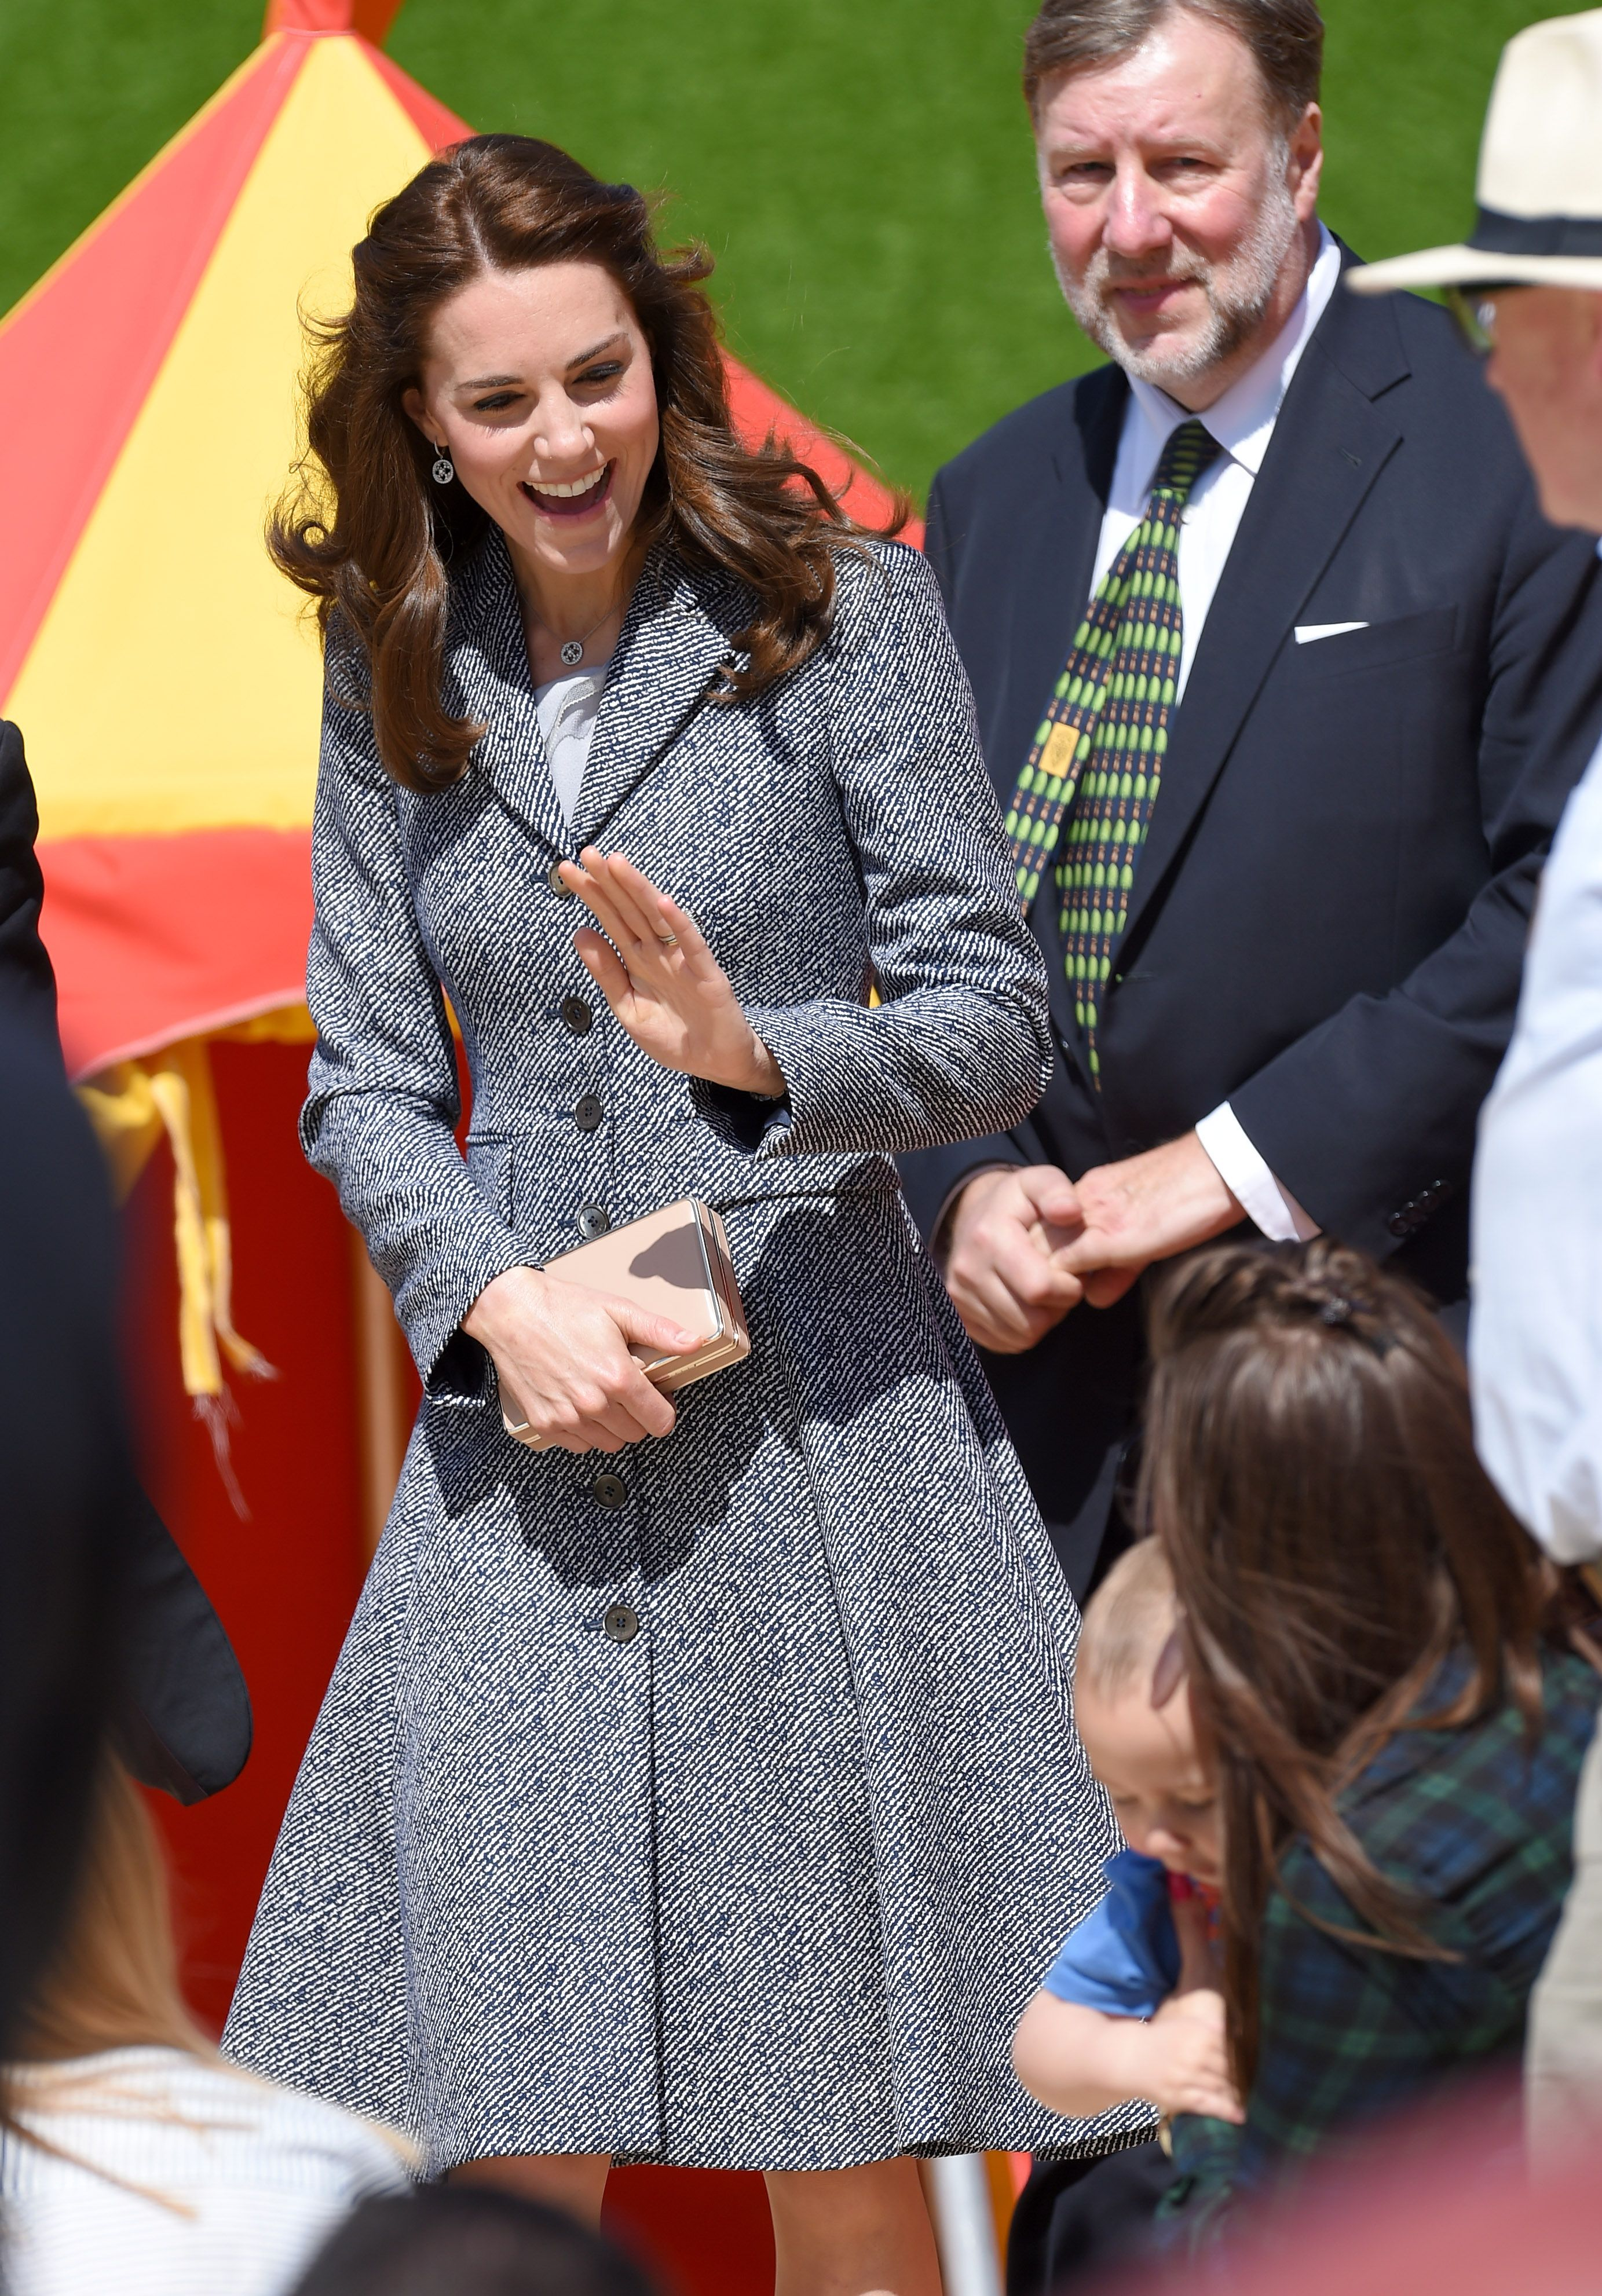 Aww!: Kate Middleton Tours Medieval-Themed Playground, Admits Prince George Would Be Afraid of its Dragon!